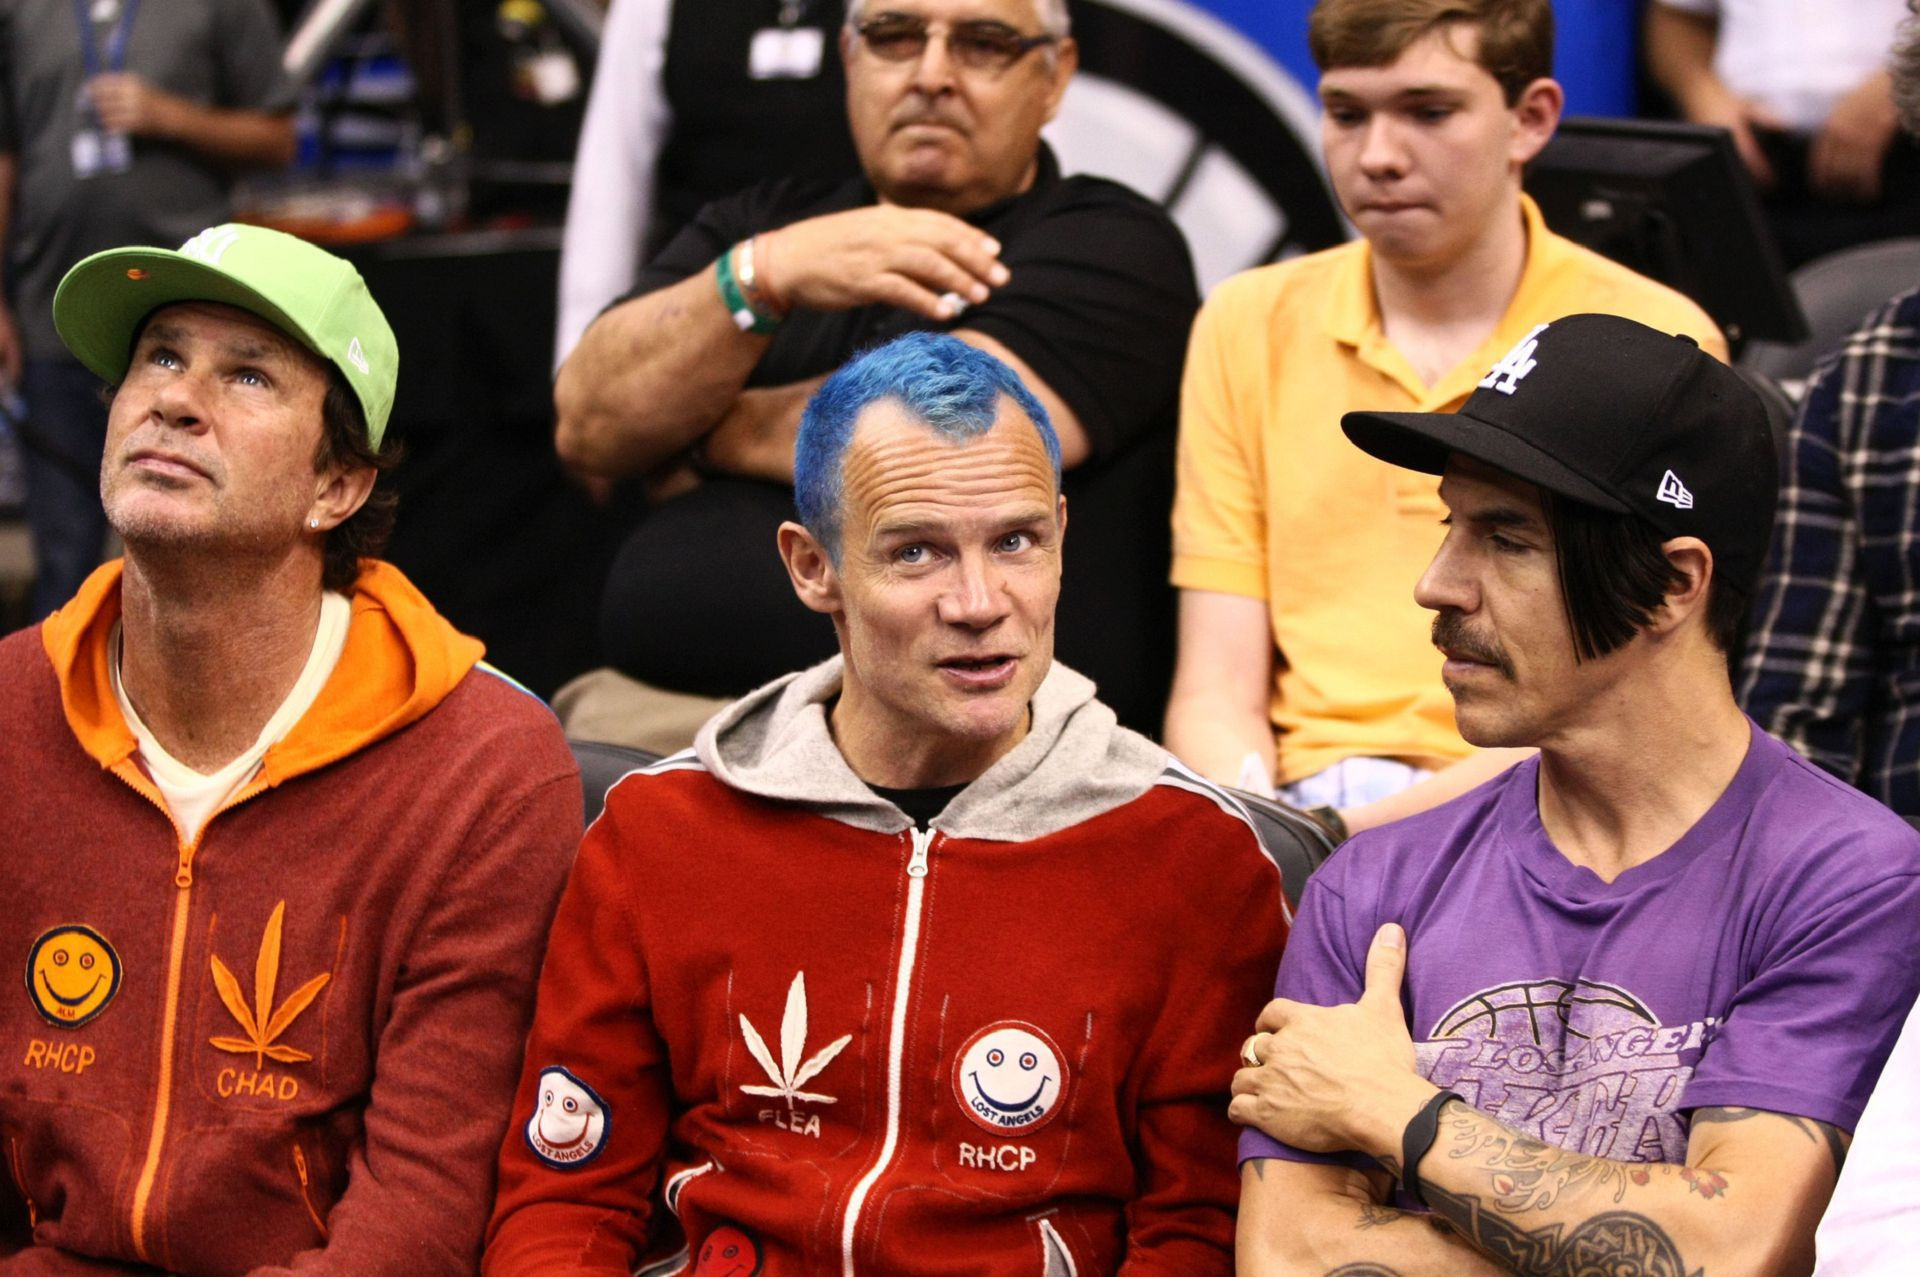 red hot chili peppers - photo #34